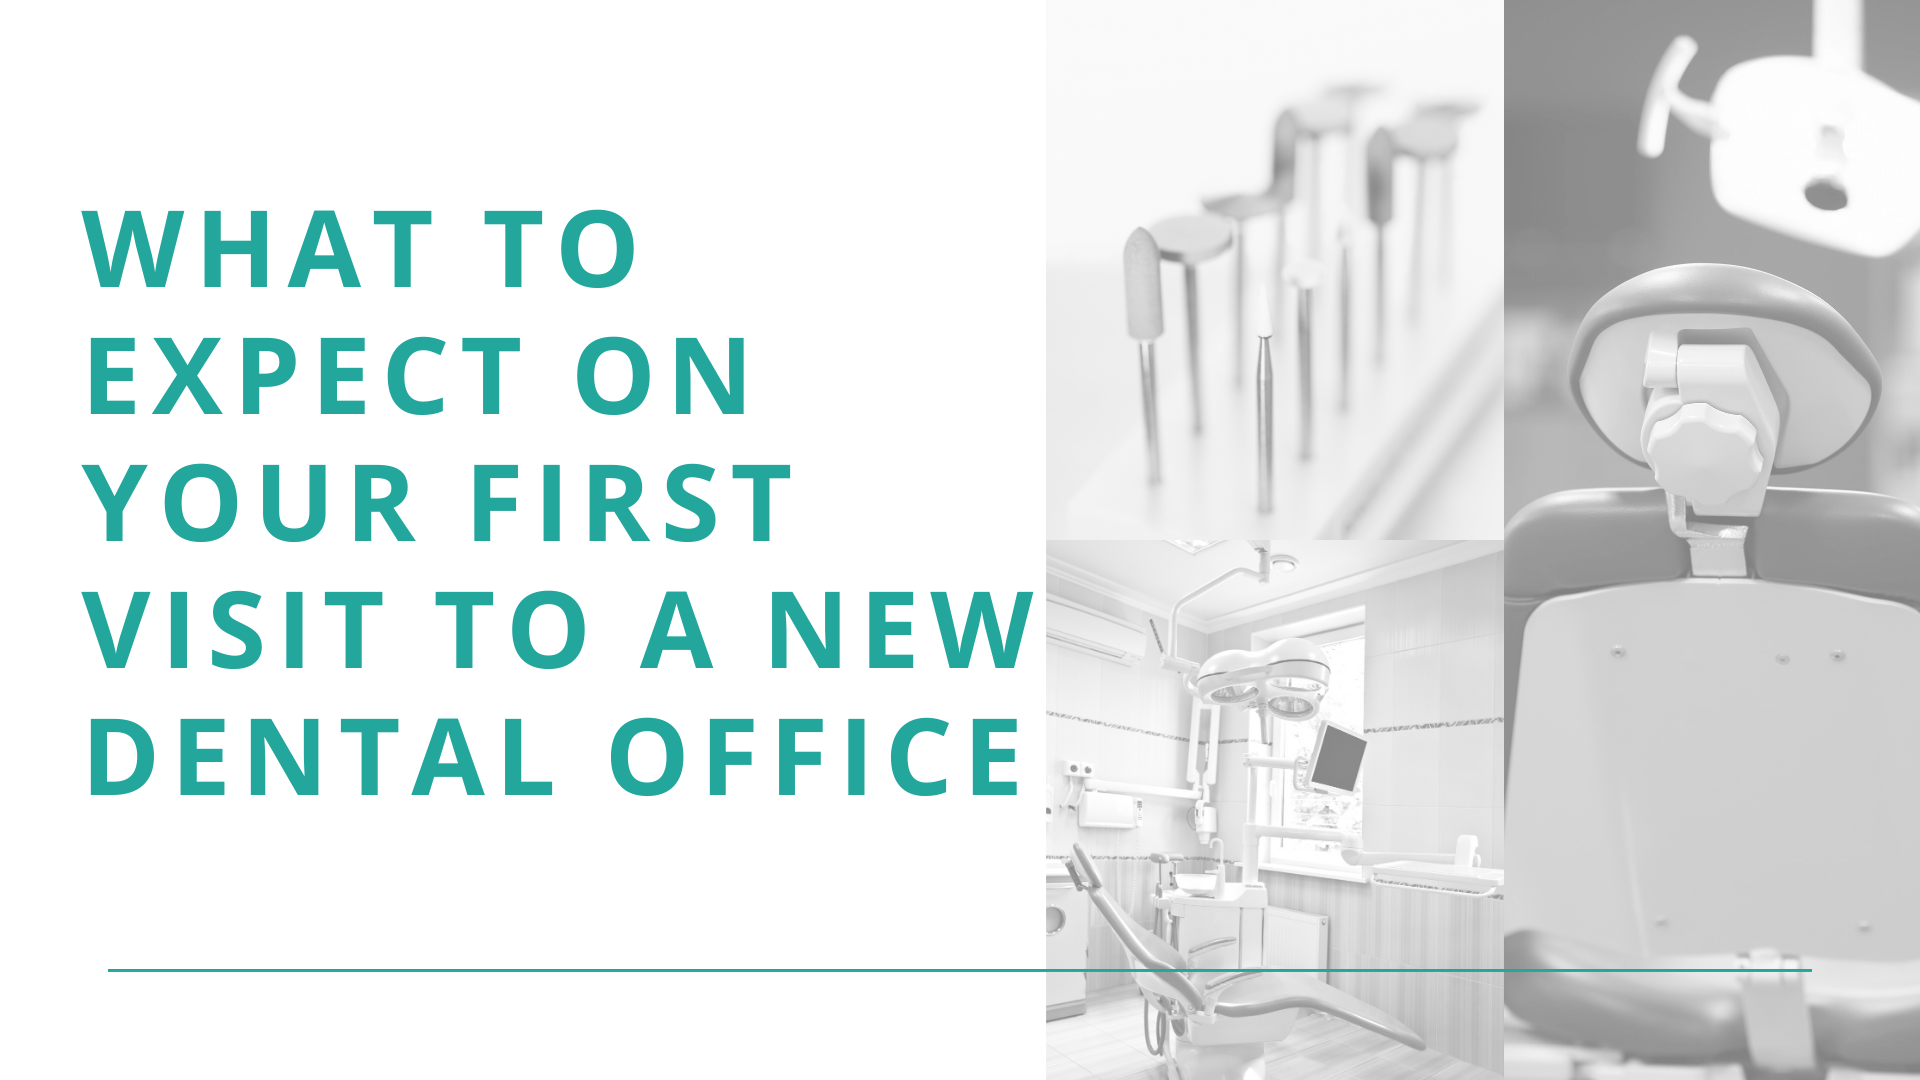 What to Expect On Your First Visit To A New Dental Office